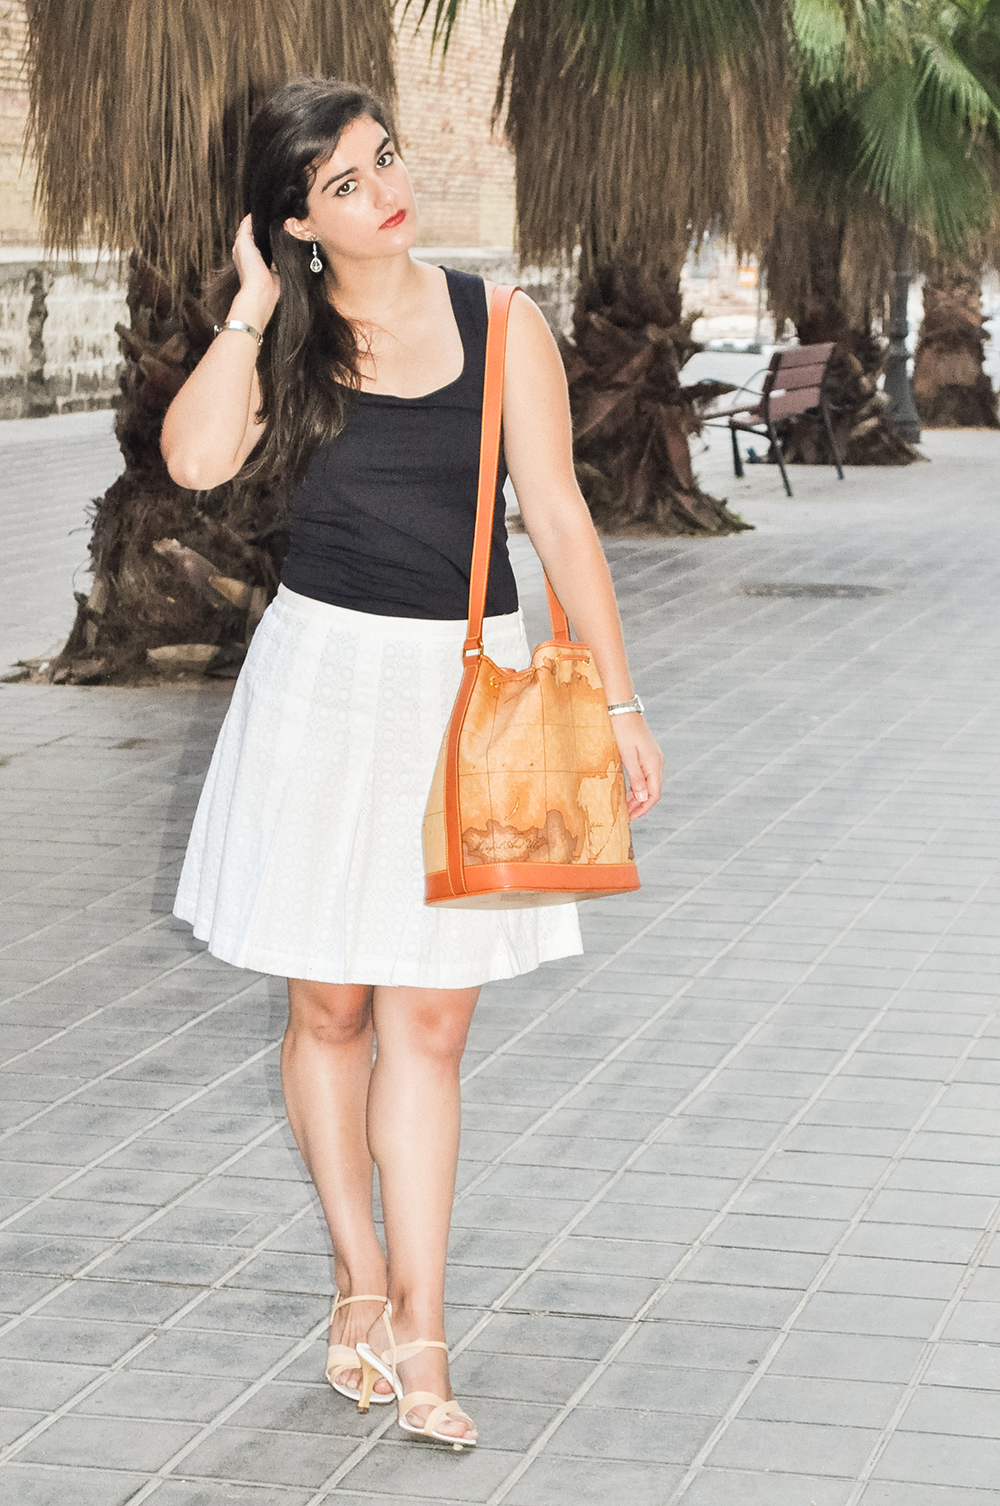 somethingfashionblogger_valencia_spain_firenze_alvieromartini bag map_ootd 4